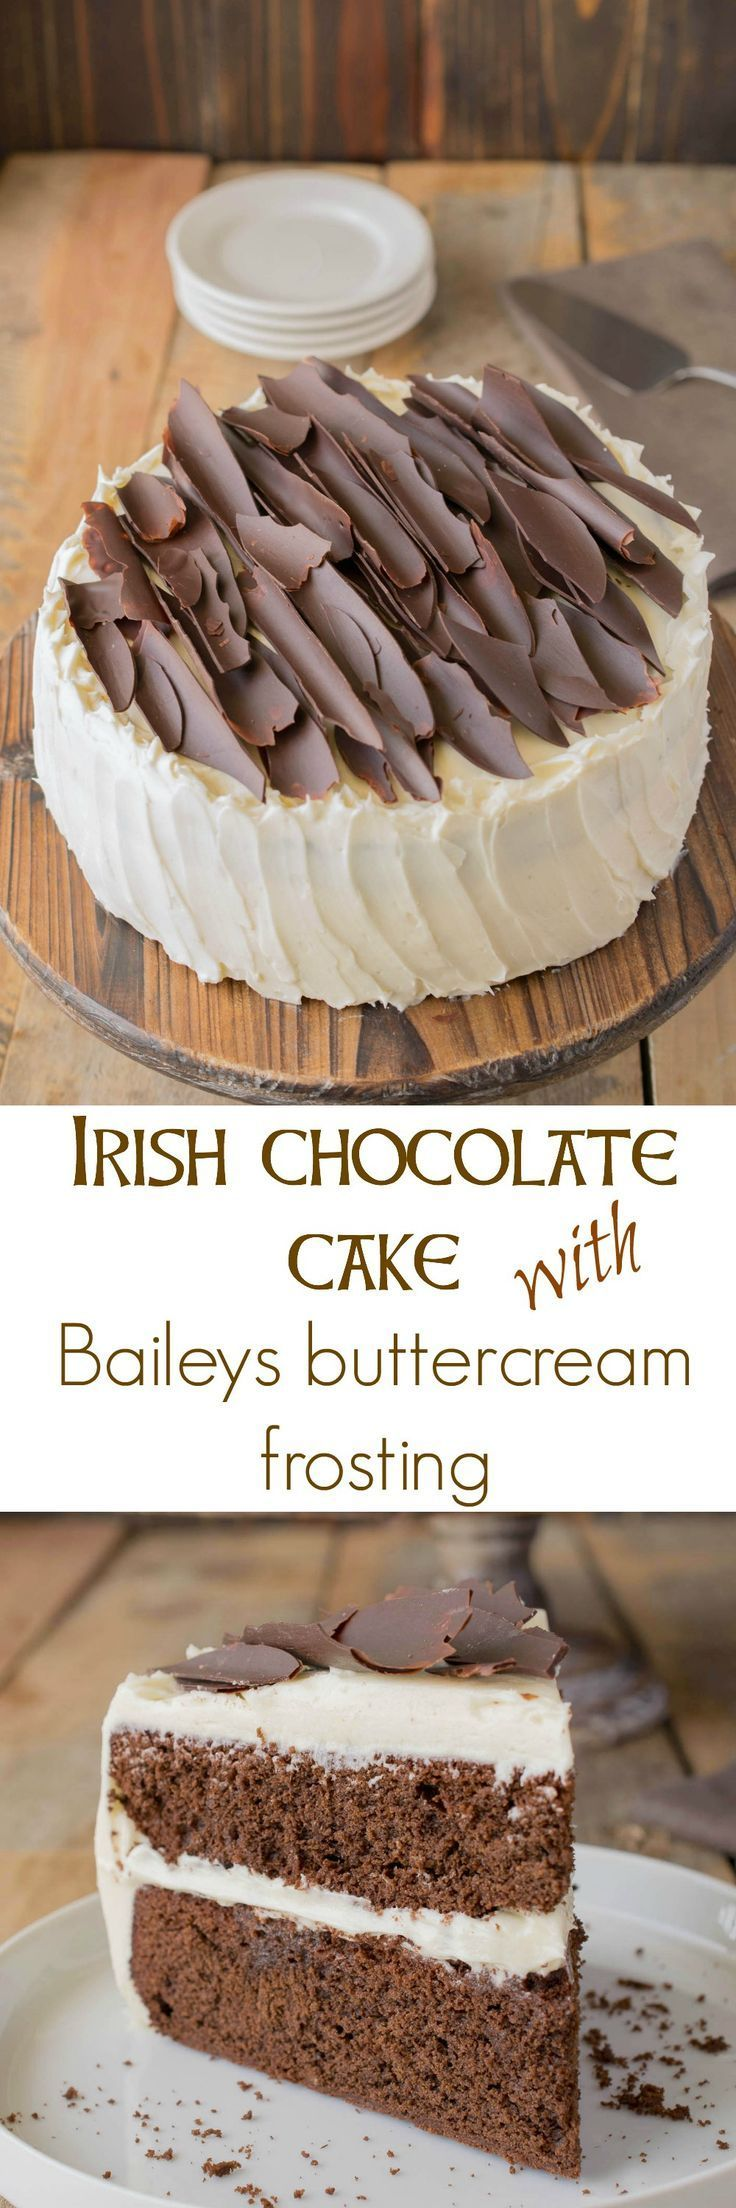 Irish chocolate cake with Baileys buttercream frosting is both decadent and addictive with layers of moist chocolate cake adorned with Baileys buttercream frosting.